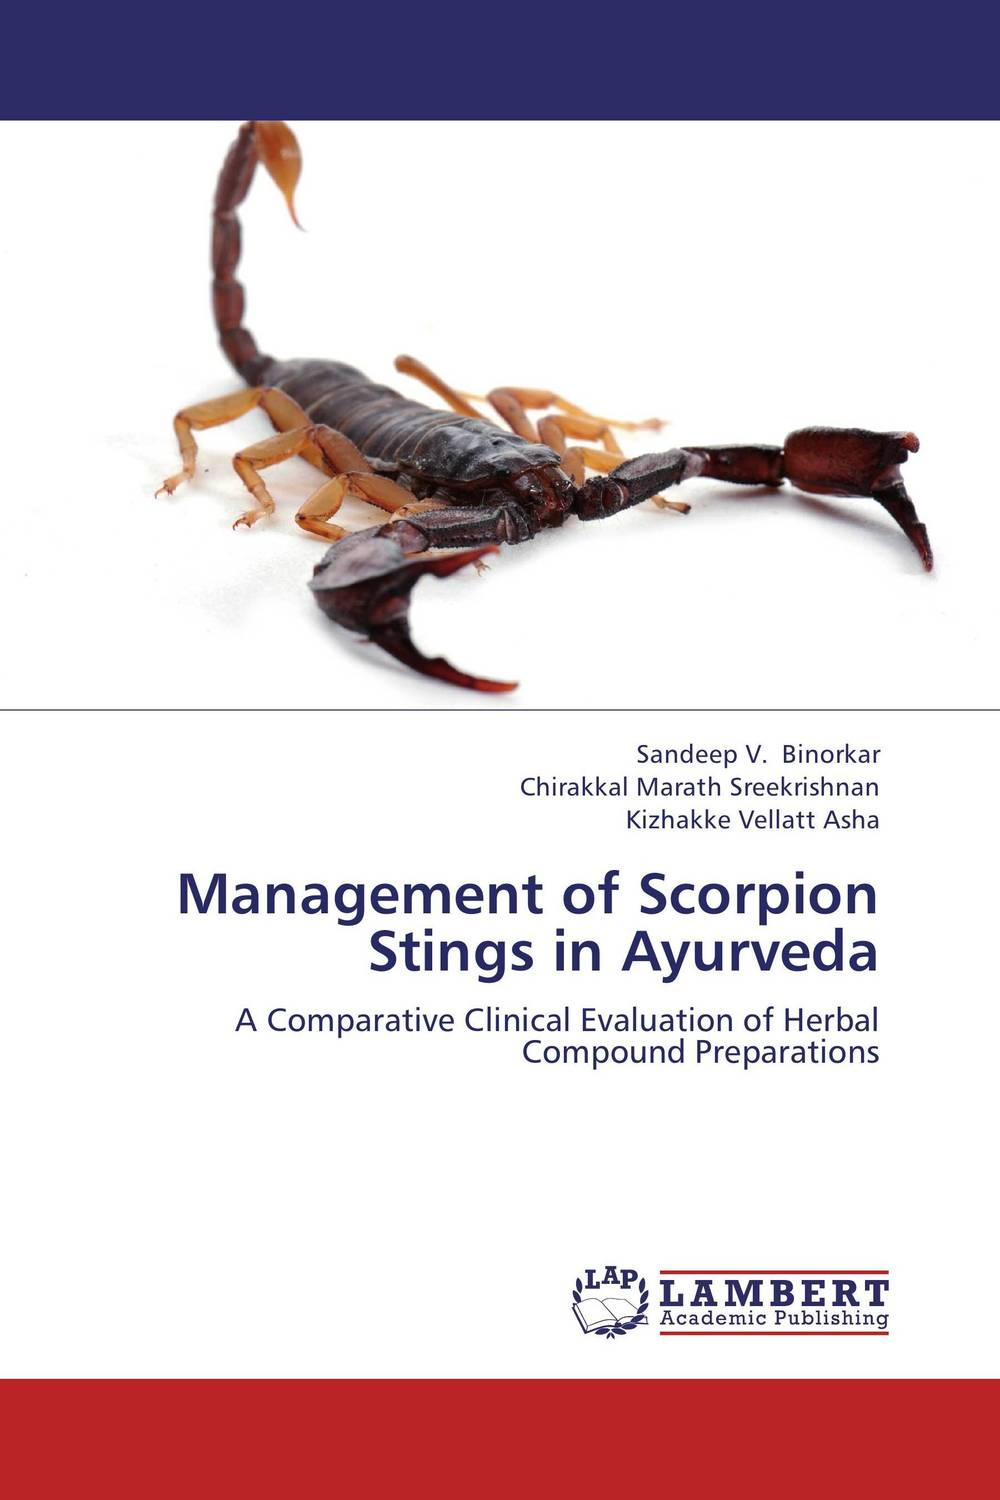 Management of Scorpion Stings in Ayurveda benign enlargement of prostate gland bep in ayurveda